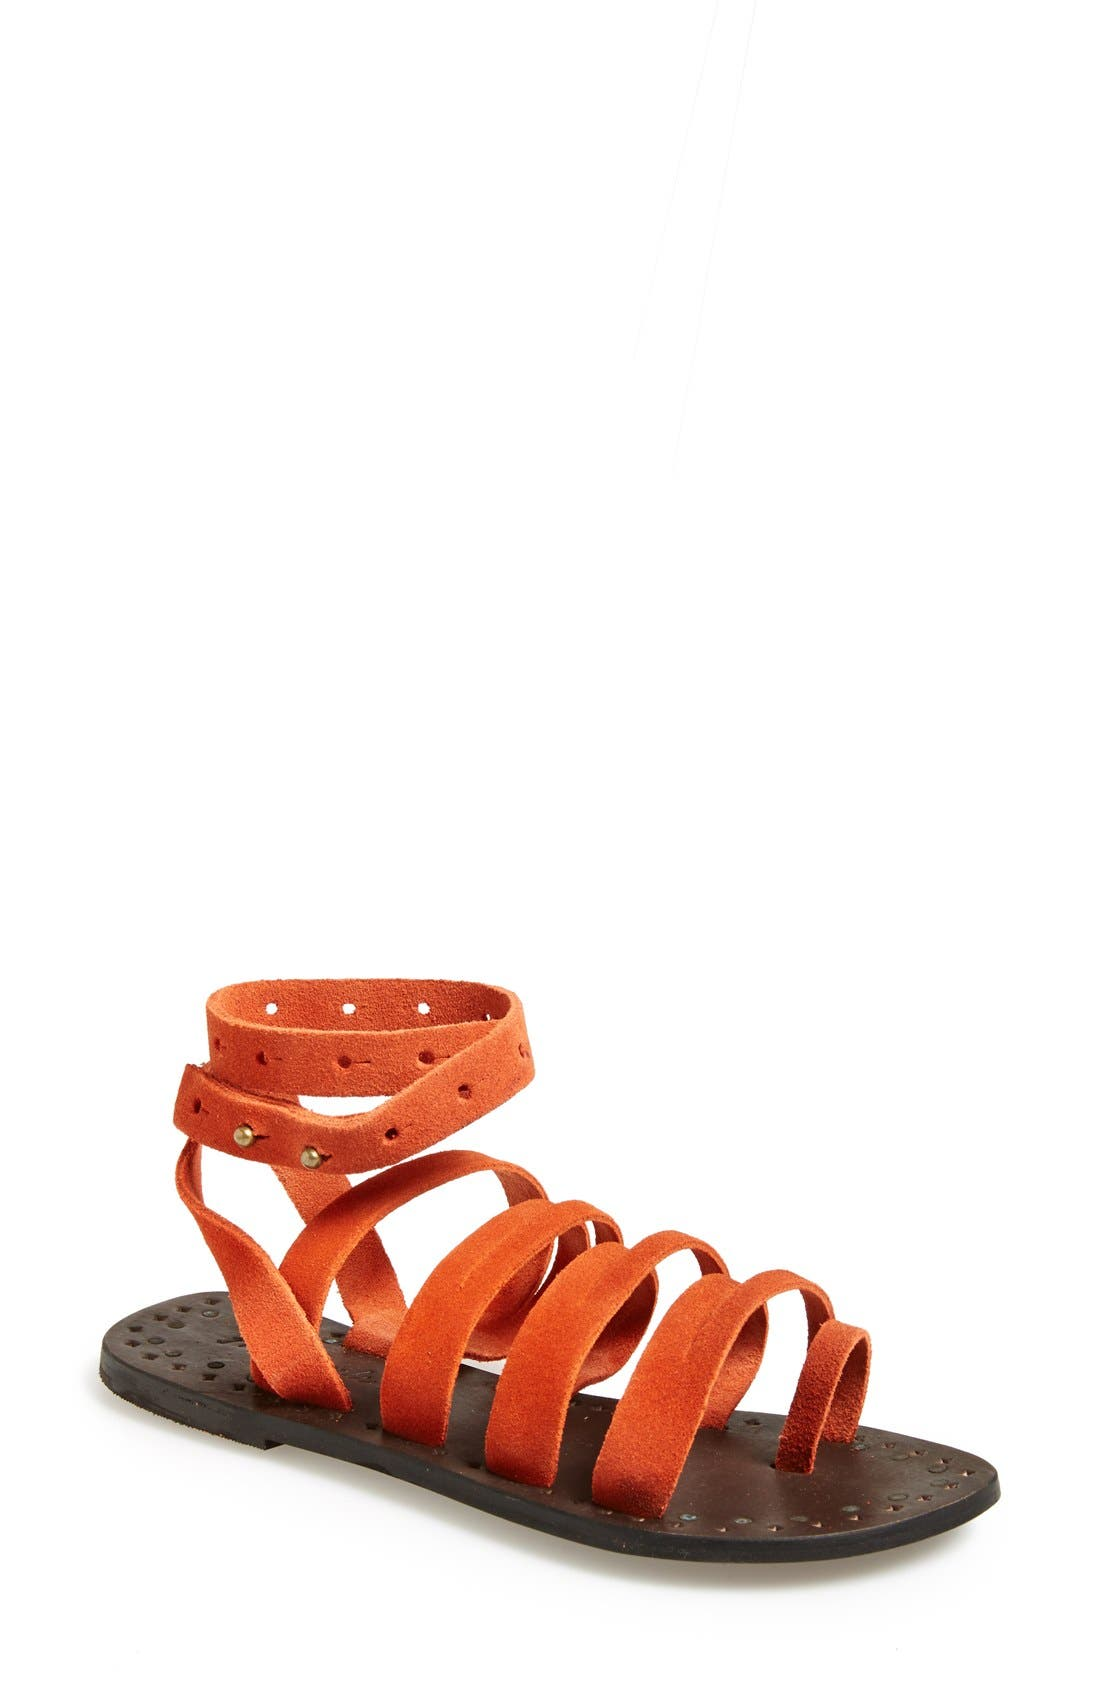 Alternate Image 1 Selected - Free People 'Sunever' Leather Gladiator Sandal (Women)